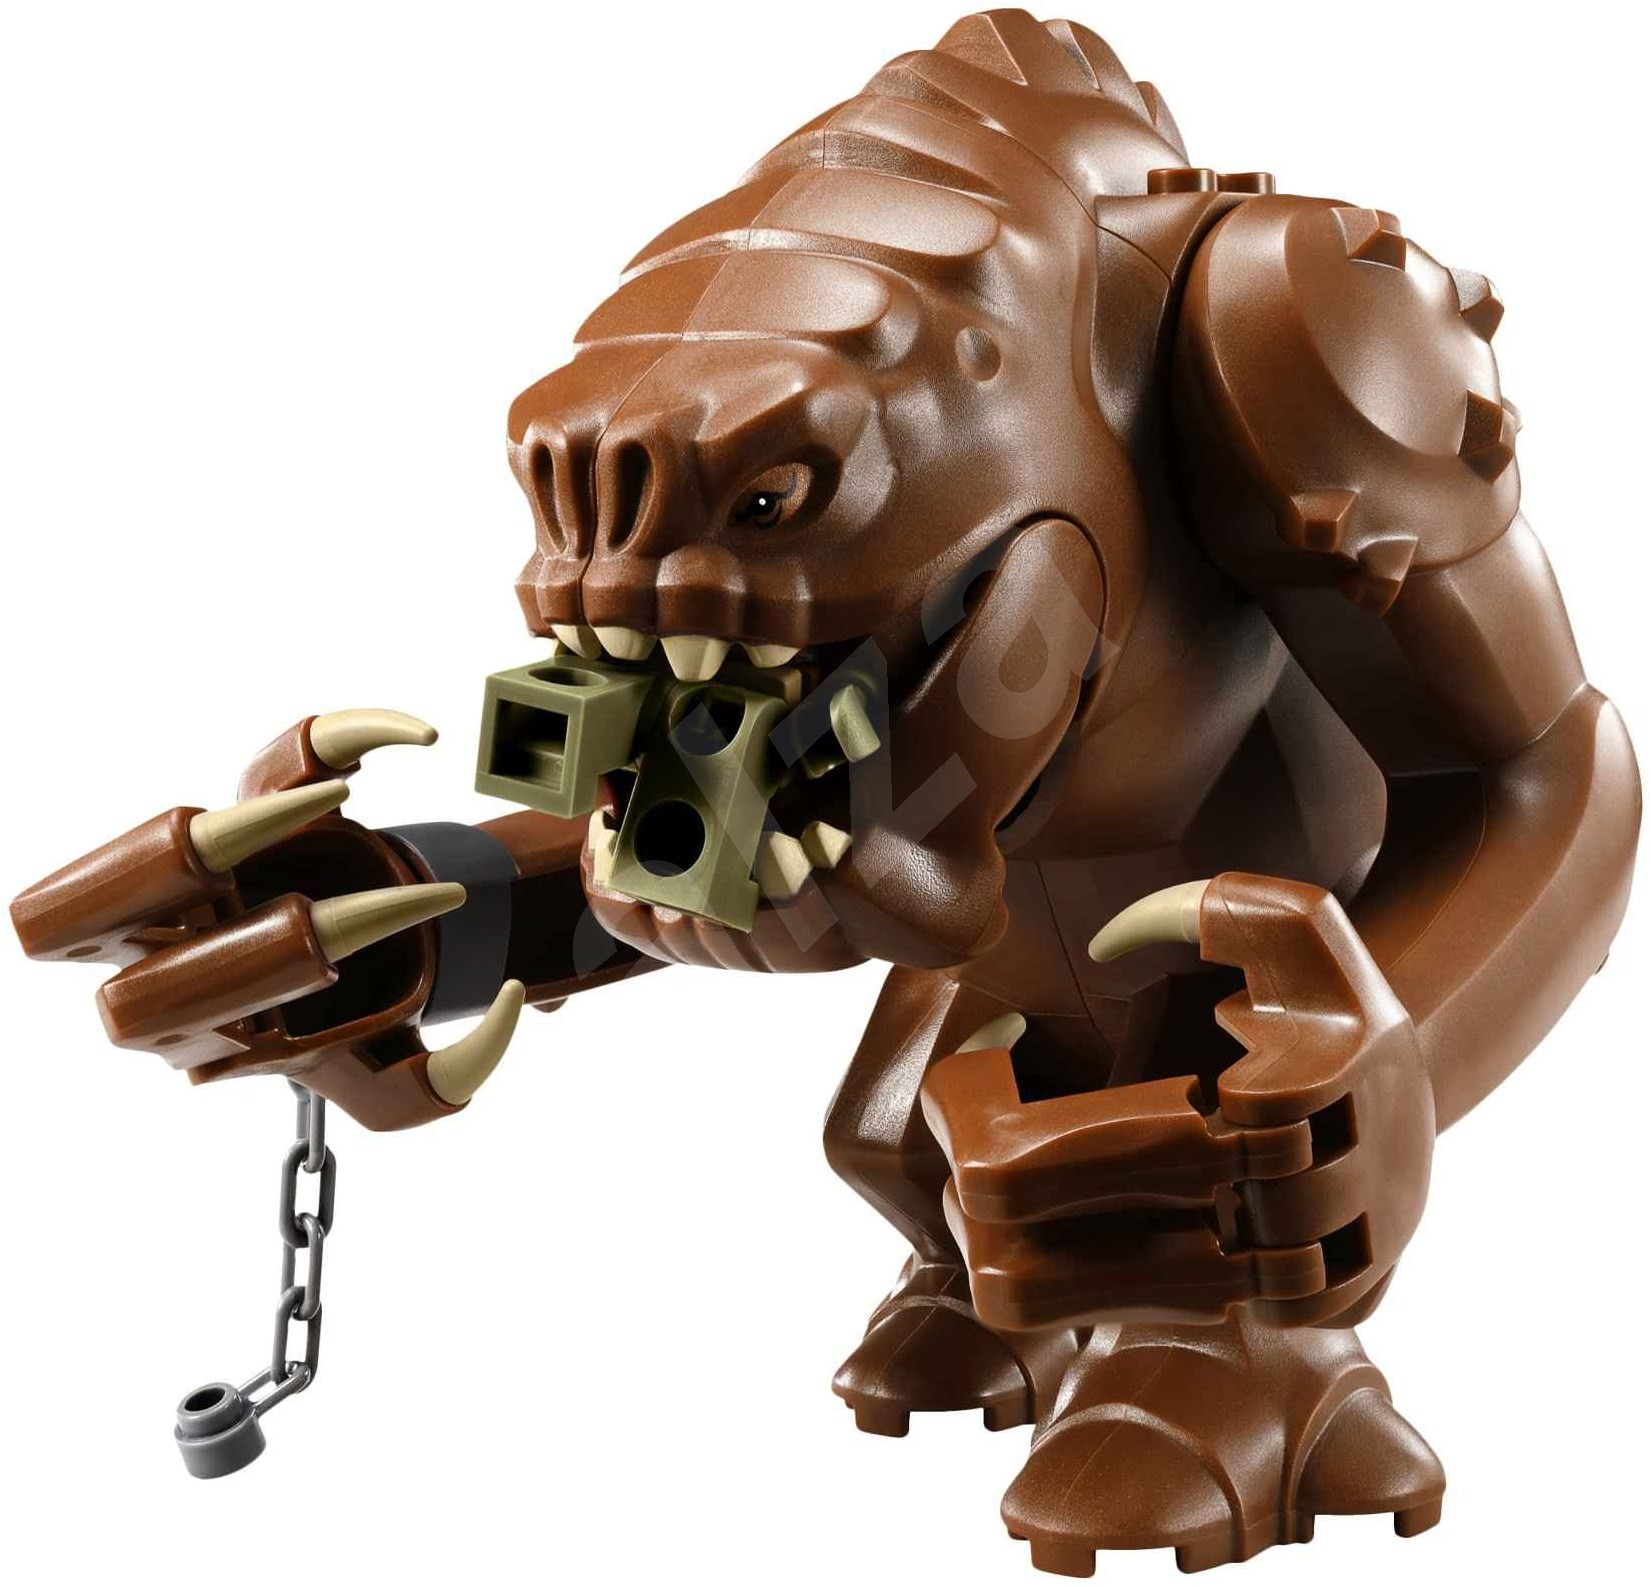 Lego Star Wars Monsters-Galeries Porno-1490